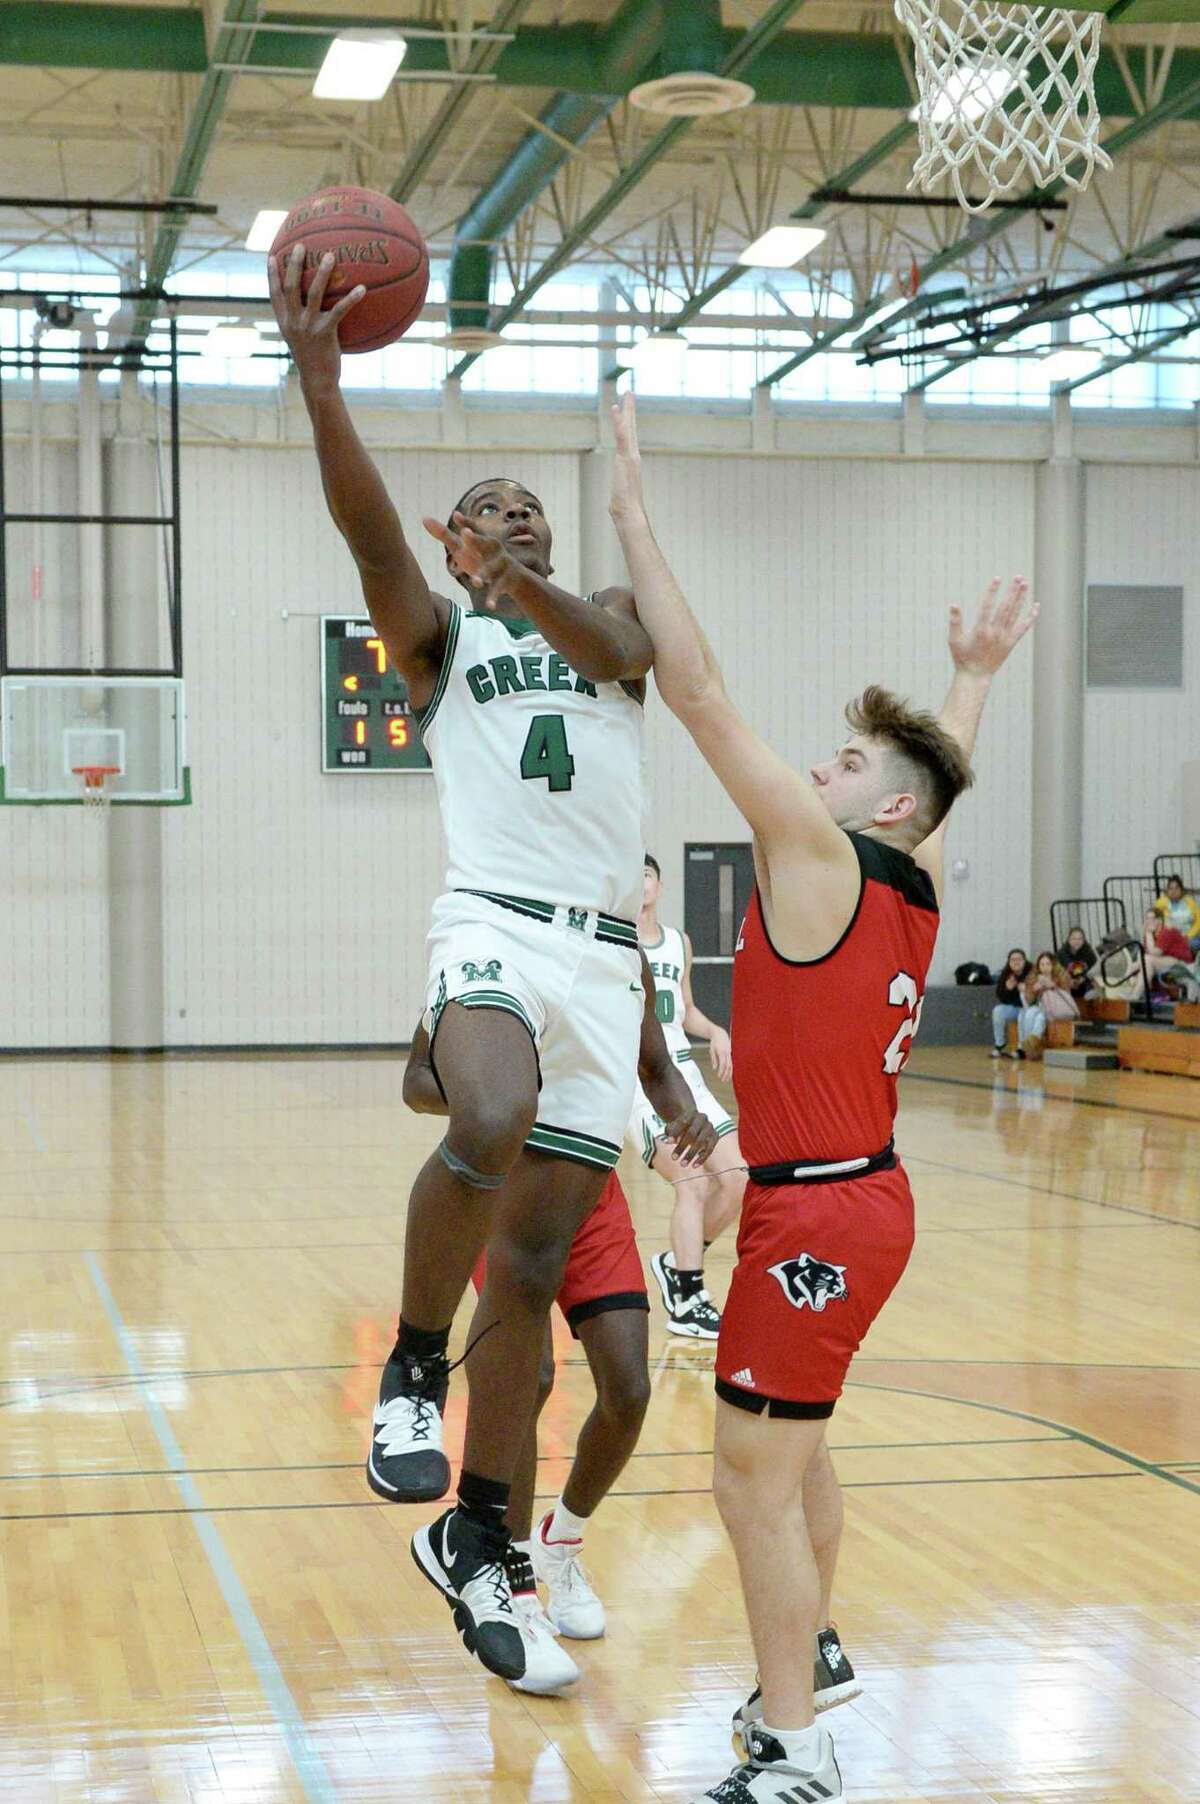 Rommell Williams (4) of Mayde Creek drives past Spencer Skivington (21) of Tomball during pool play of the Katy Classic Basketball Tournament between the Mayde Creek Rams and the Tomball Cougars on Thursday, December 5, 2019 at Mayde Creek HS, Houston, TX.